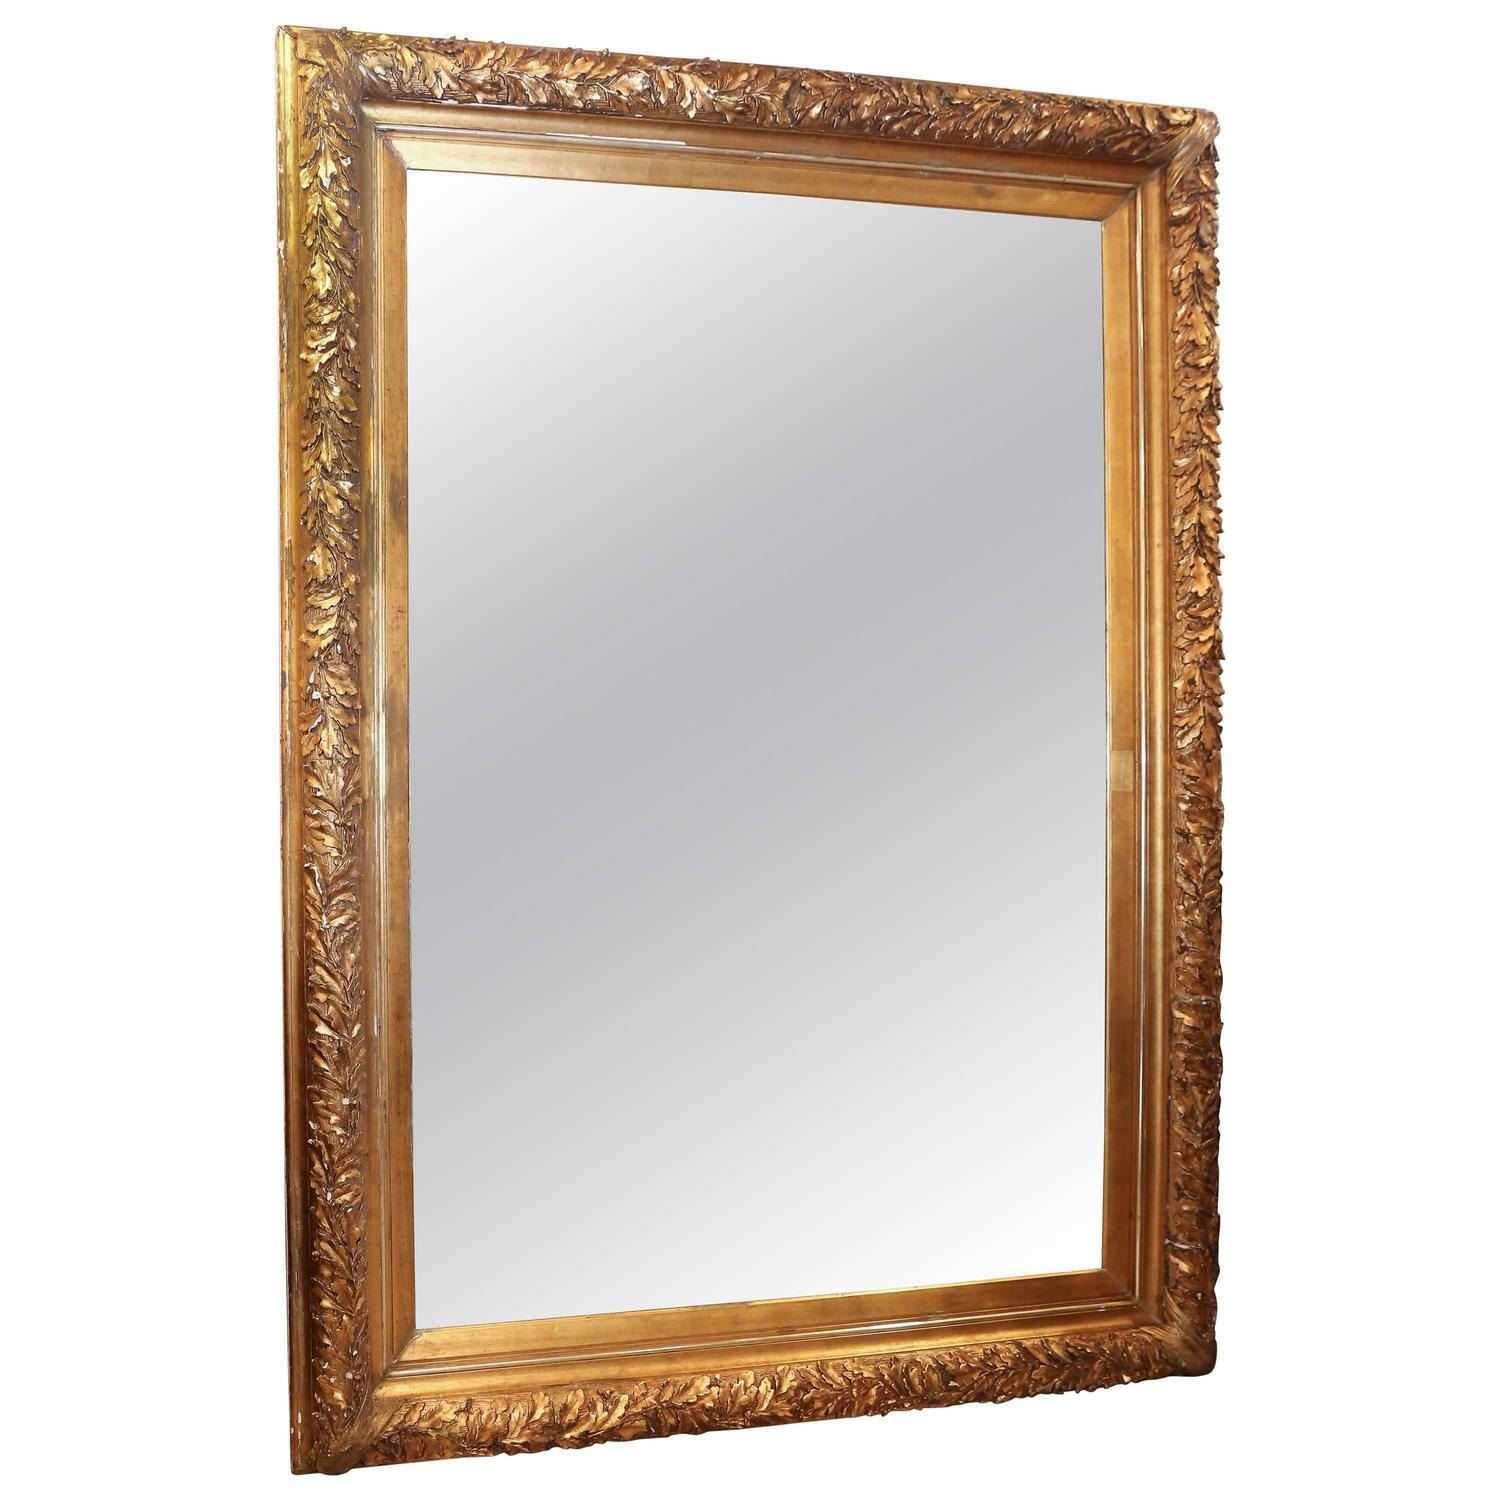 Rococo Floor Mirrors And Full Length Mirrors – 16 For Sale At 1Stdibs Pertaining To French Floor Mirror (Image 18 of 20)